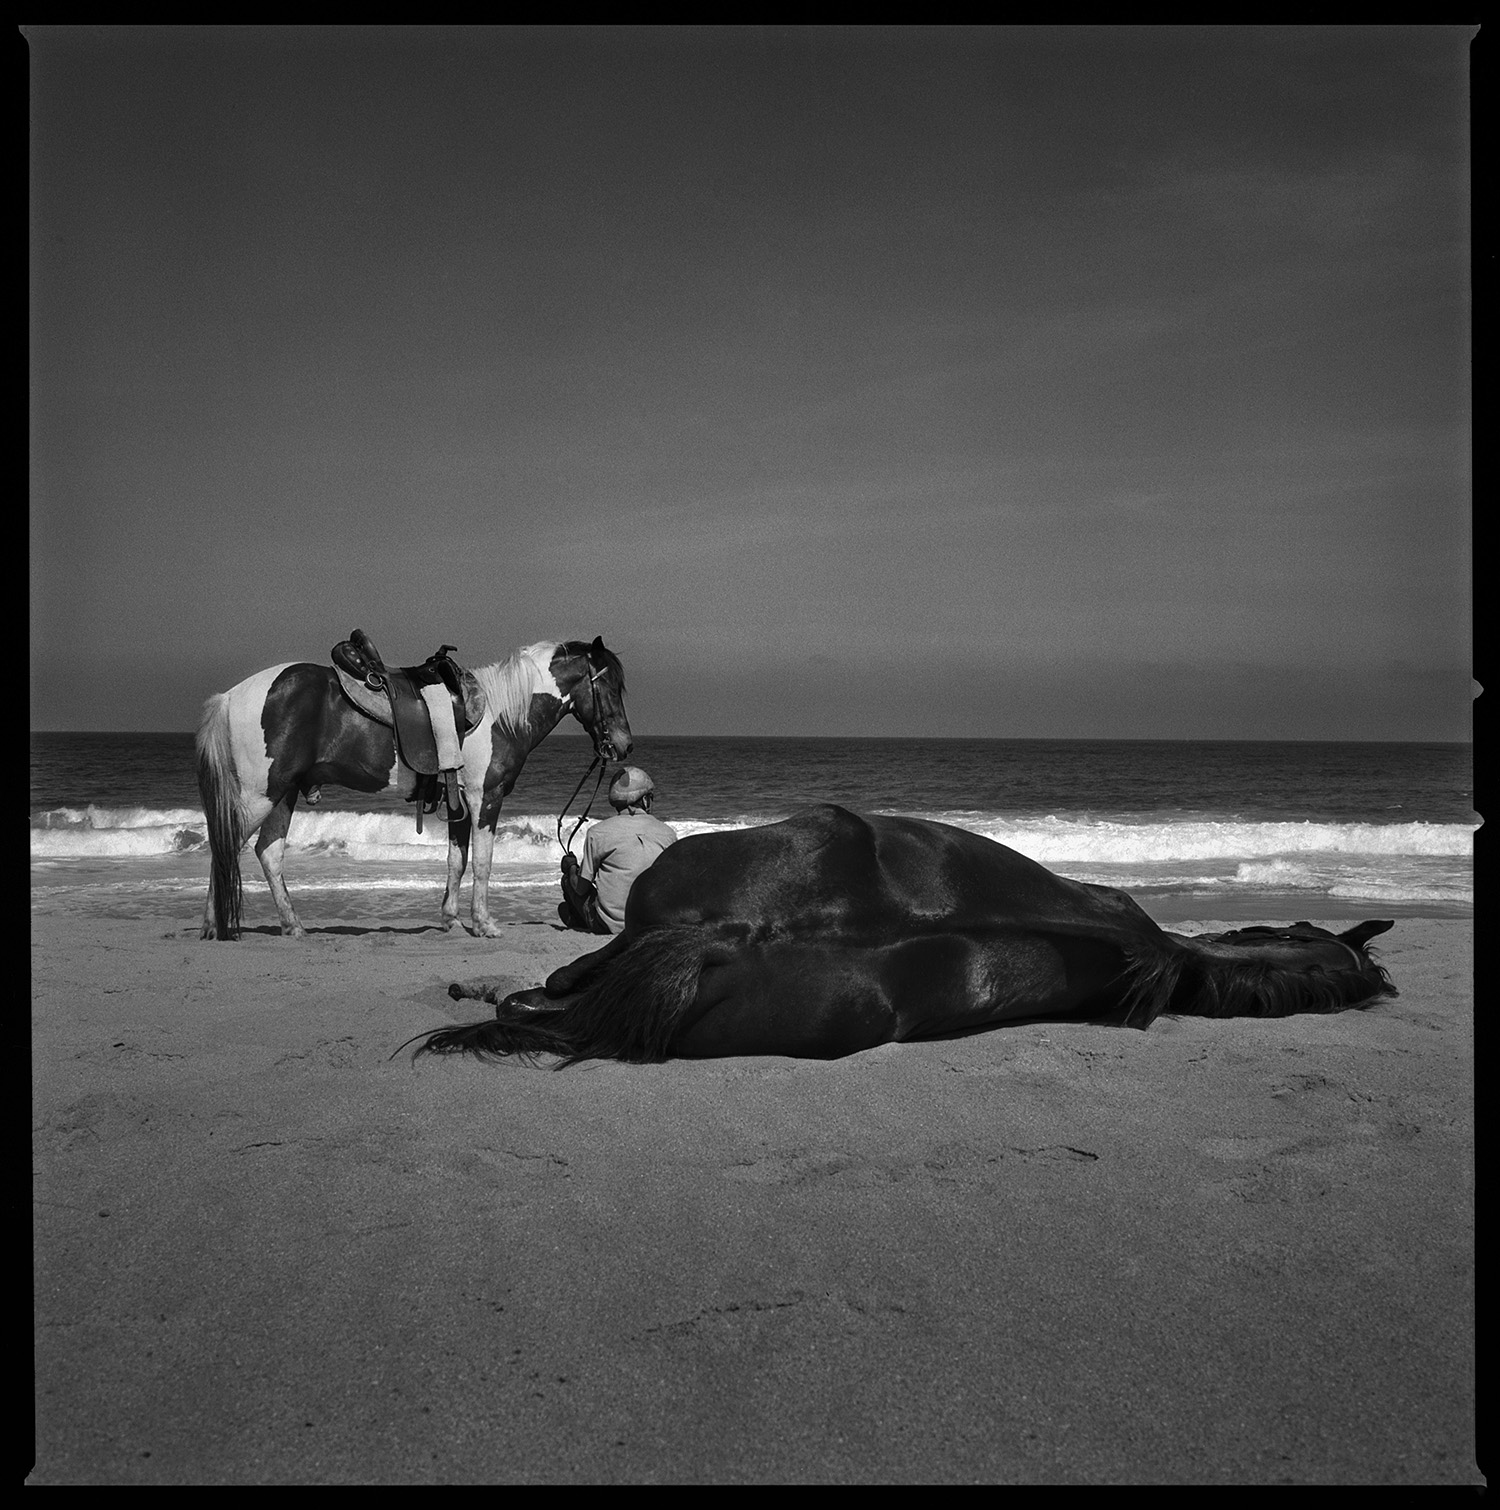 Man with his two horses on the beach Todos Santos, Mexico 2015